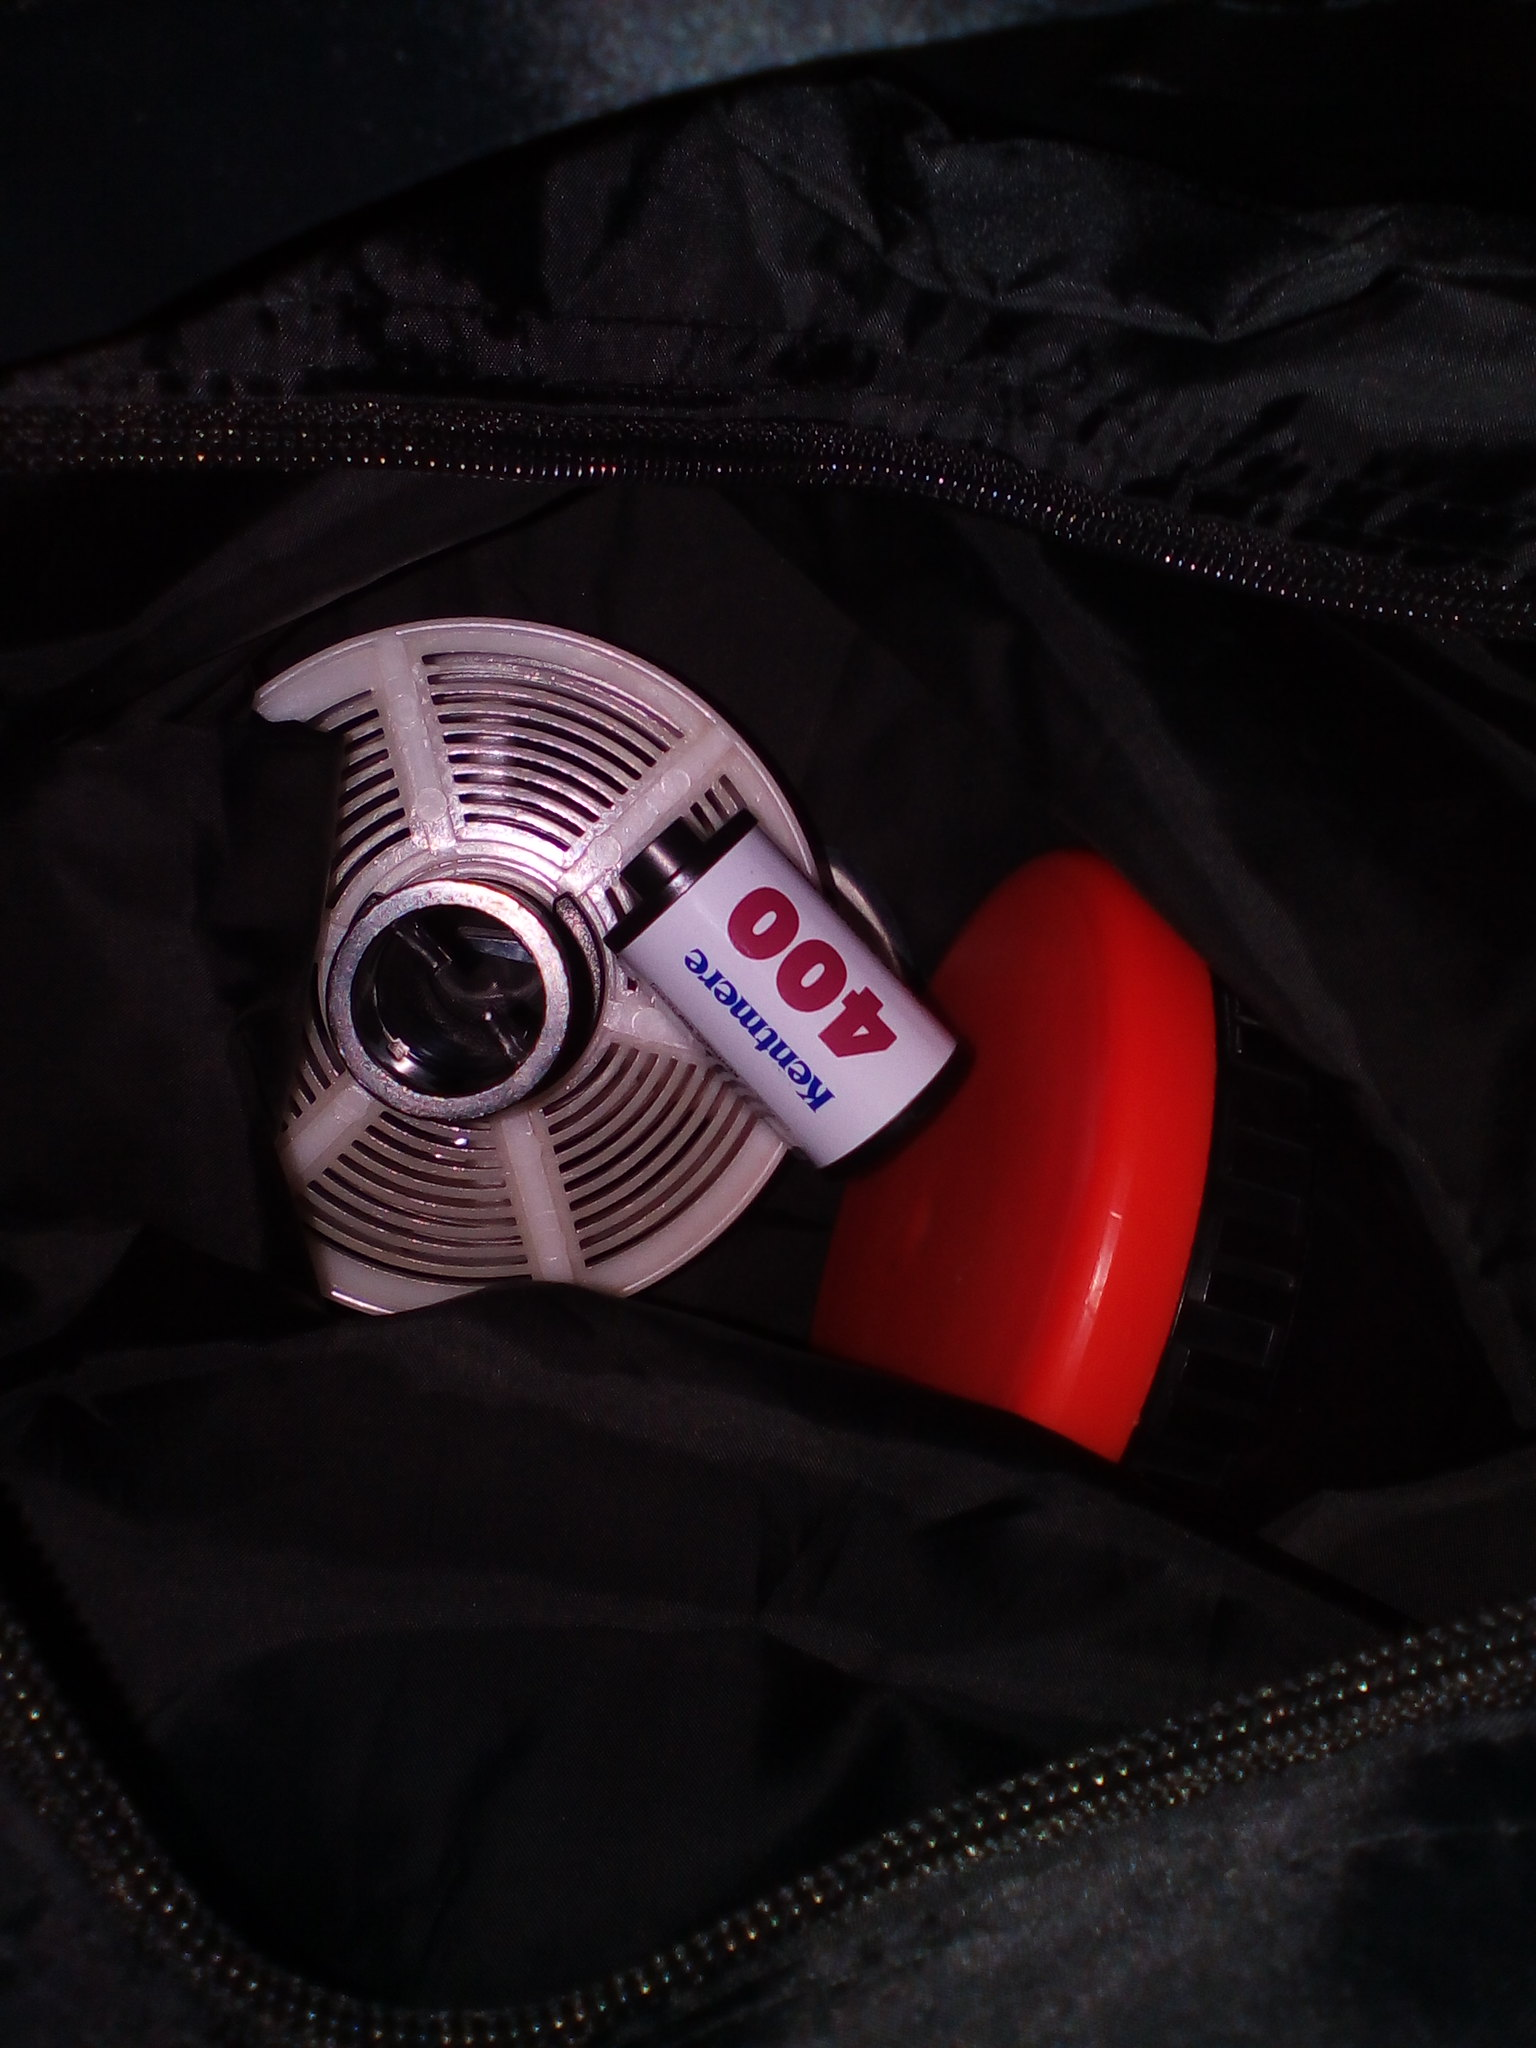 In the changing bag